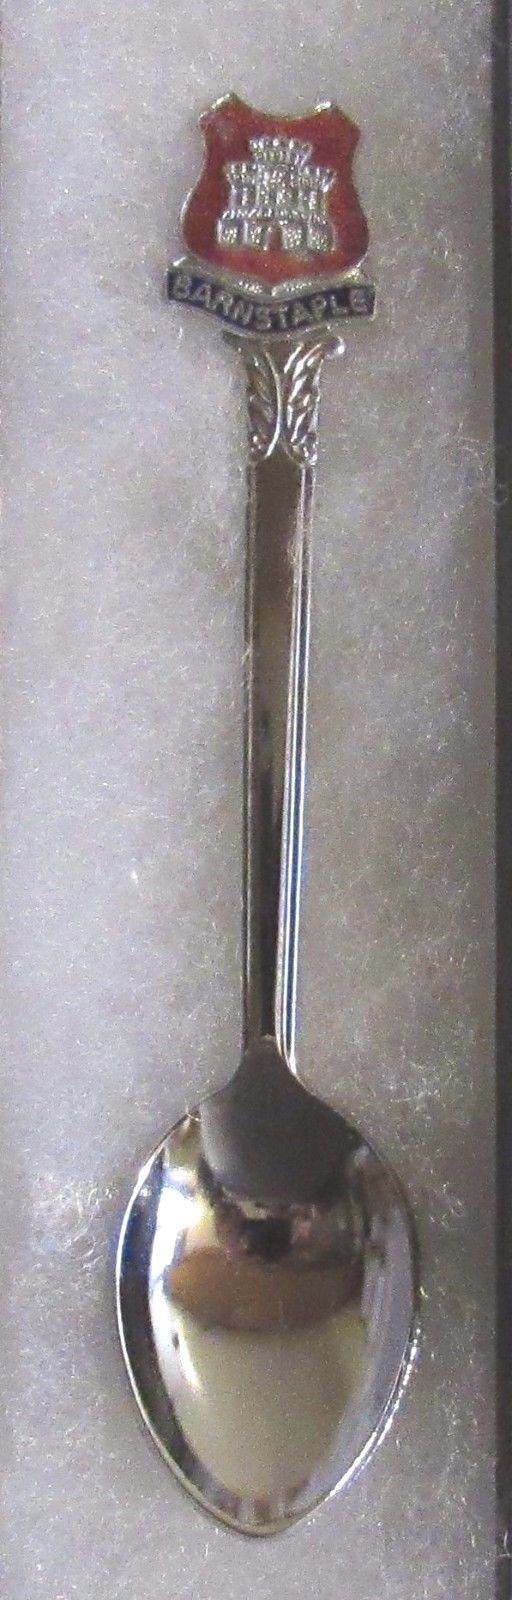 #422) silver plated tea #spoon barnstaple main town north #devon #england uk,  View more on the LINK: 	http://www.zeppy.io/product/gb/2/142144319011/